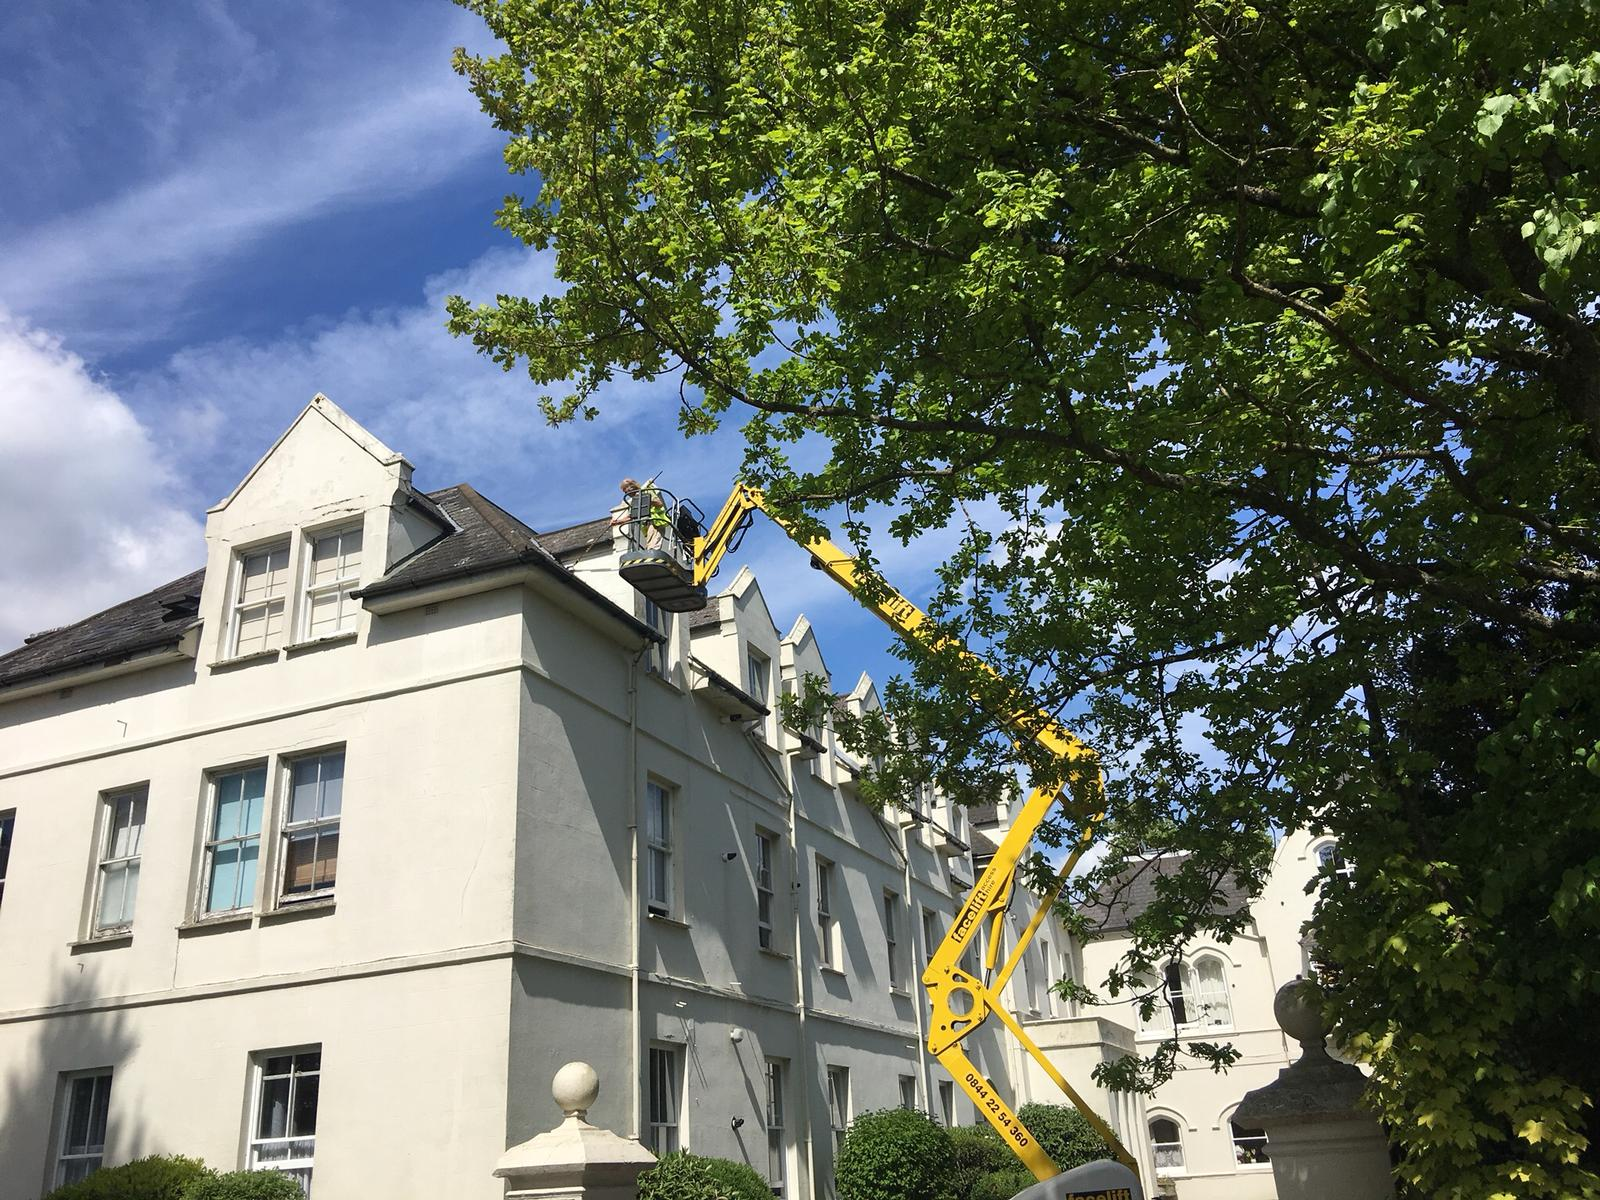 Gutter-cleaning-and-repair-eastgrinstead